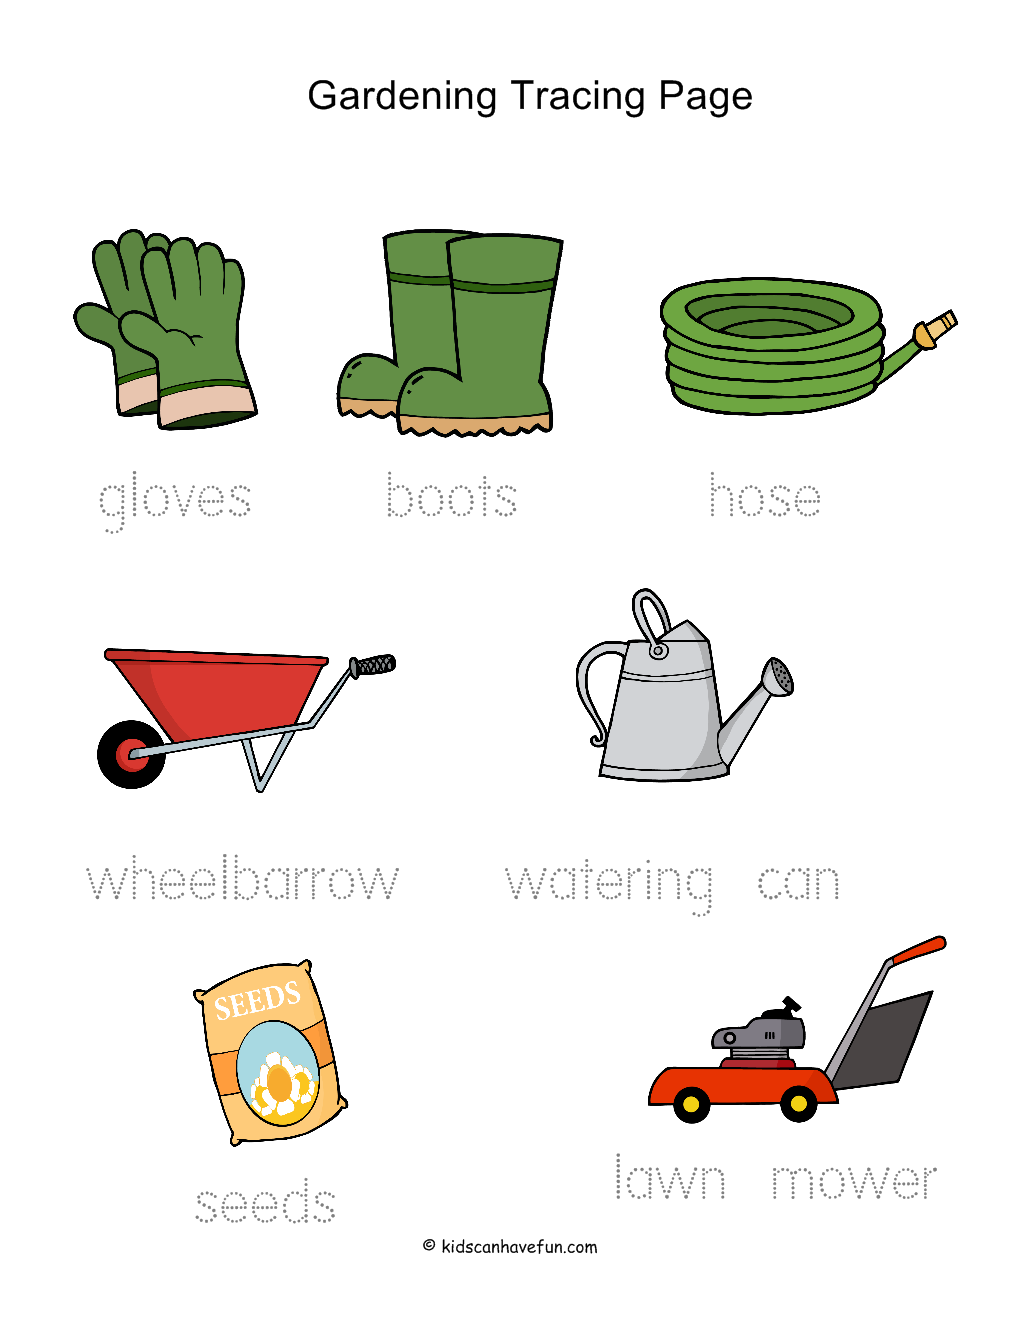 Gardening tracing worksheet summer activities for kids for Gardening tools 7 letters